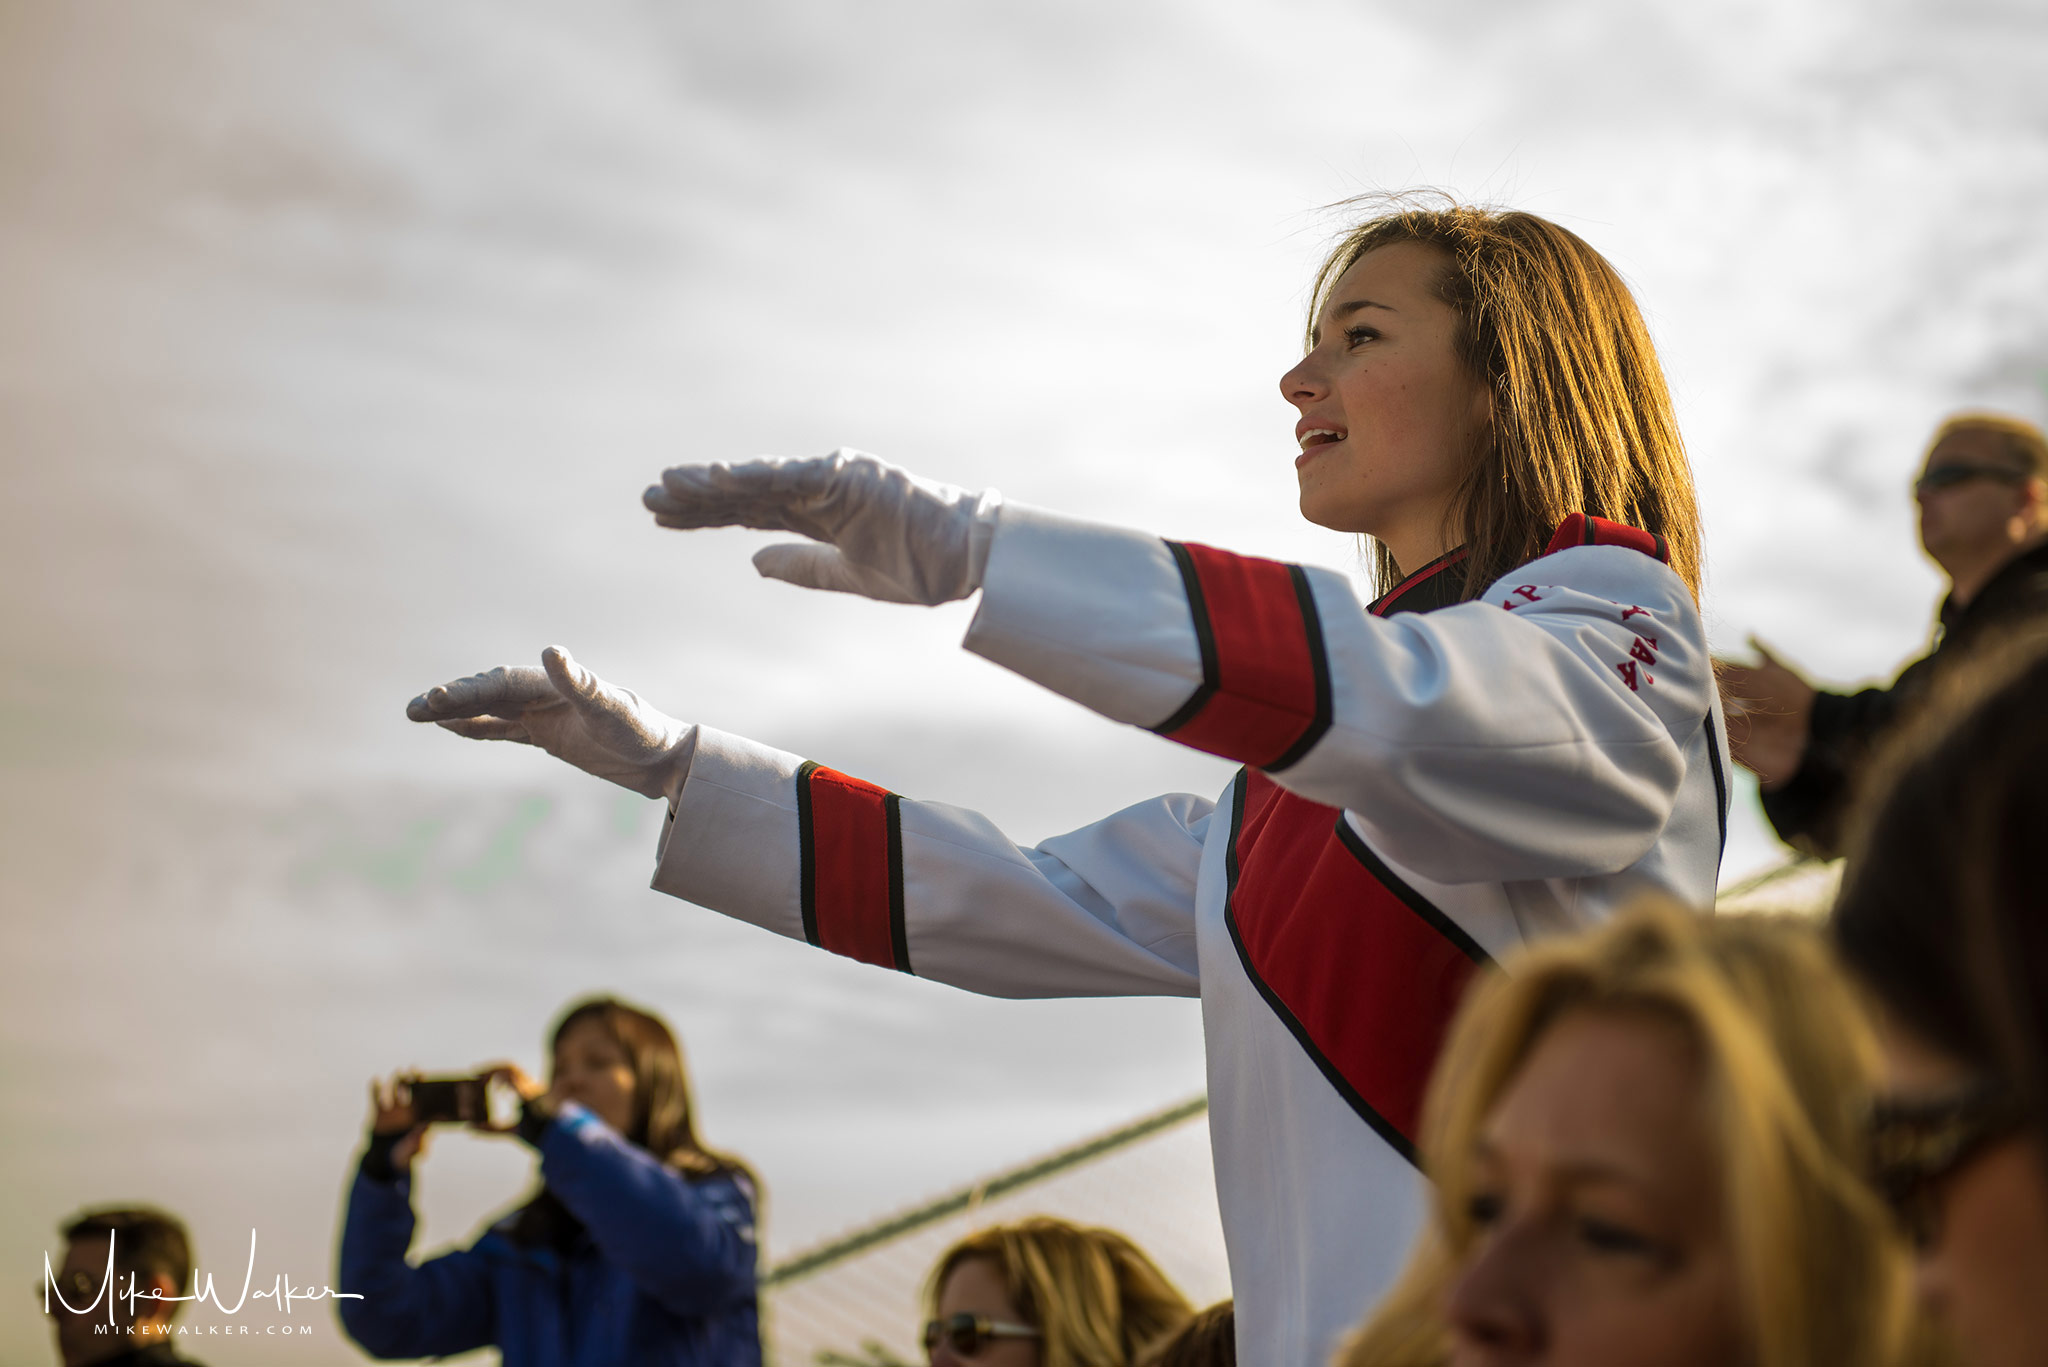 Drum major conducting a marching band in NJ. Photography by Mike Walker.